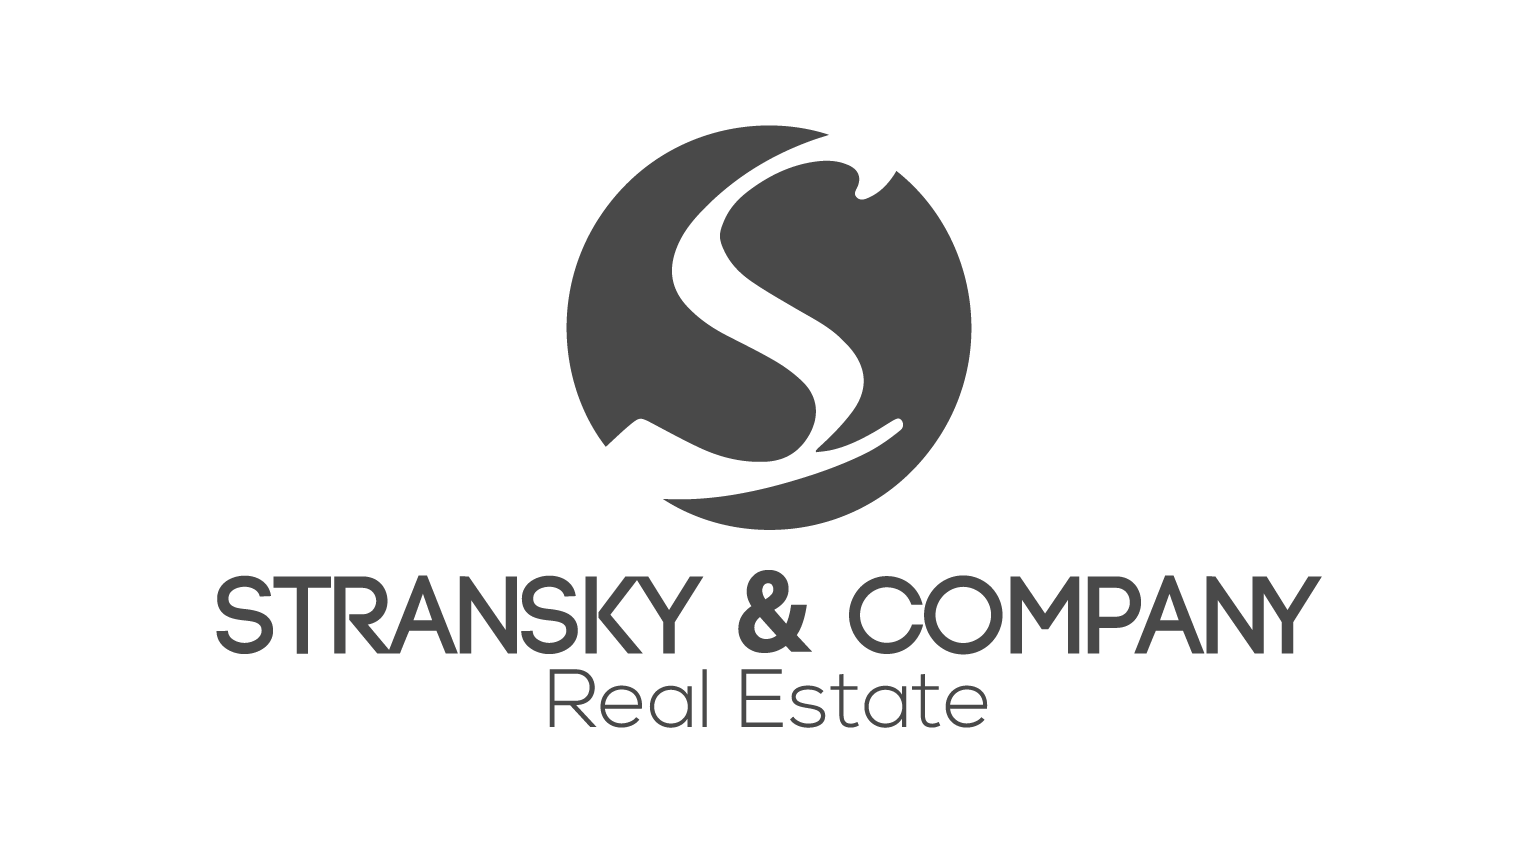 Stransky & Company Real Estate